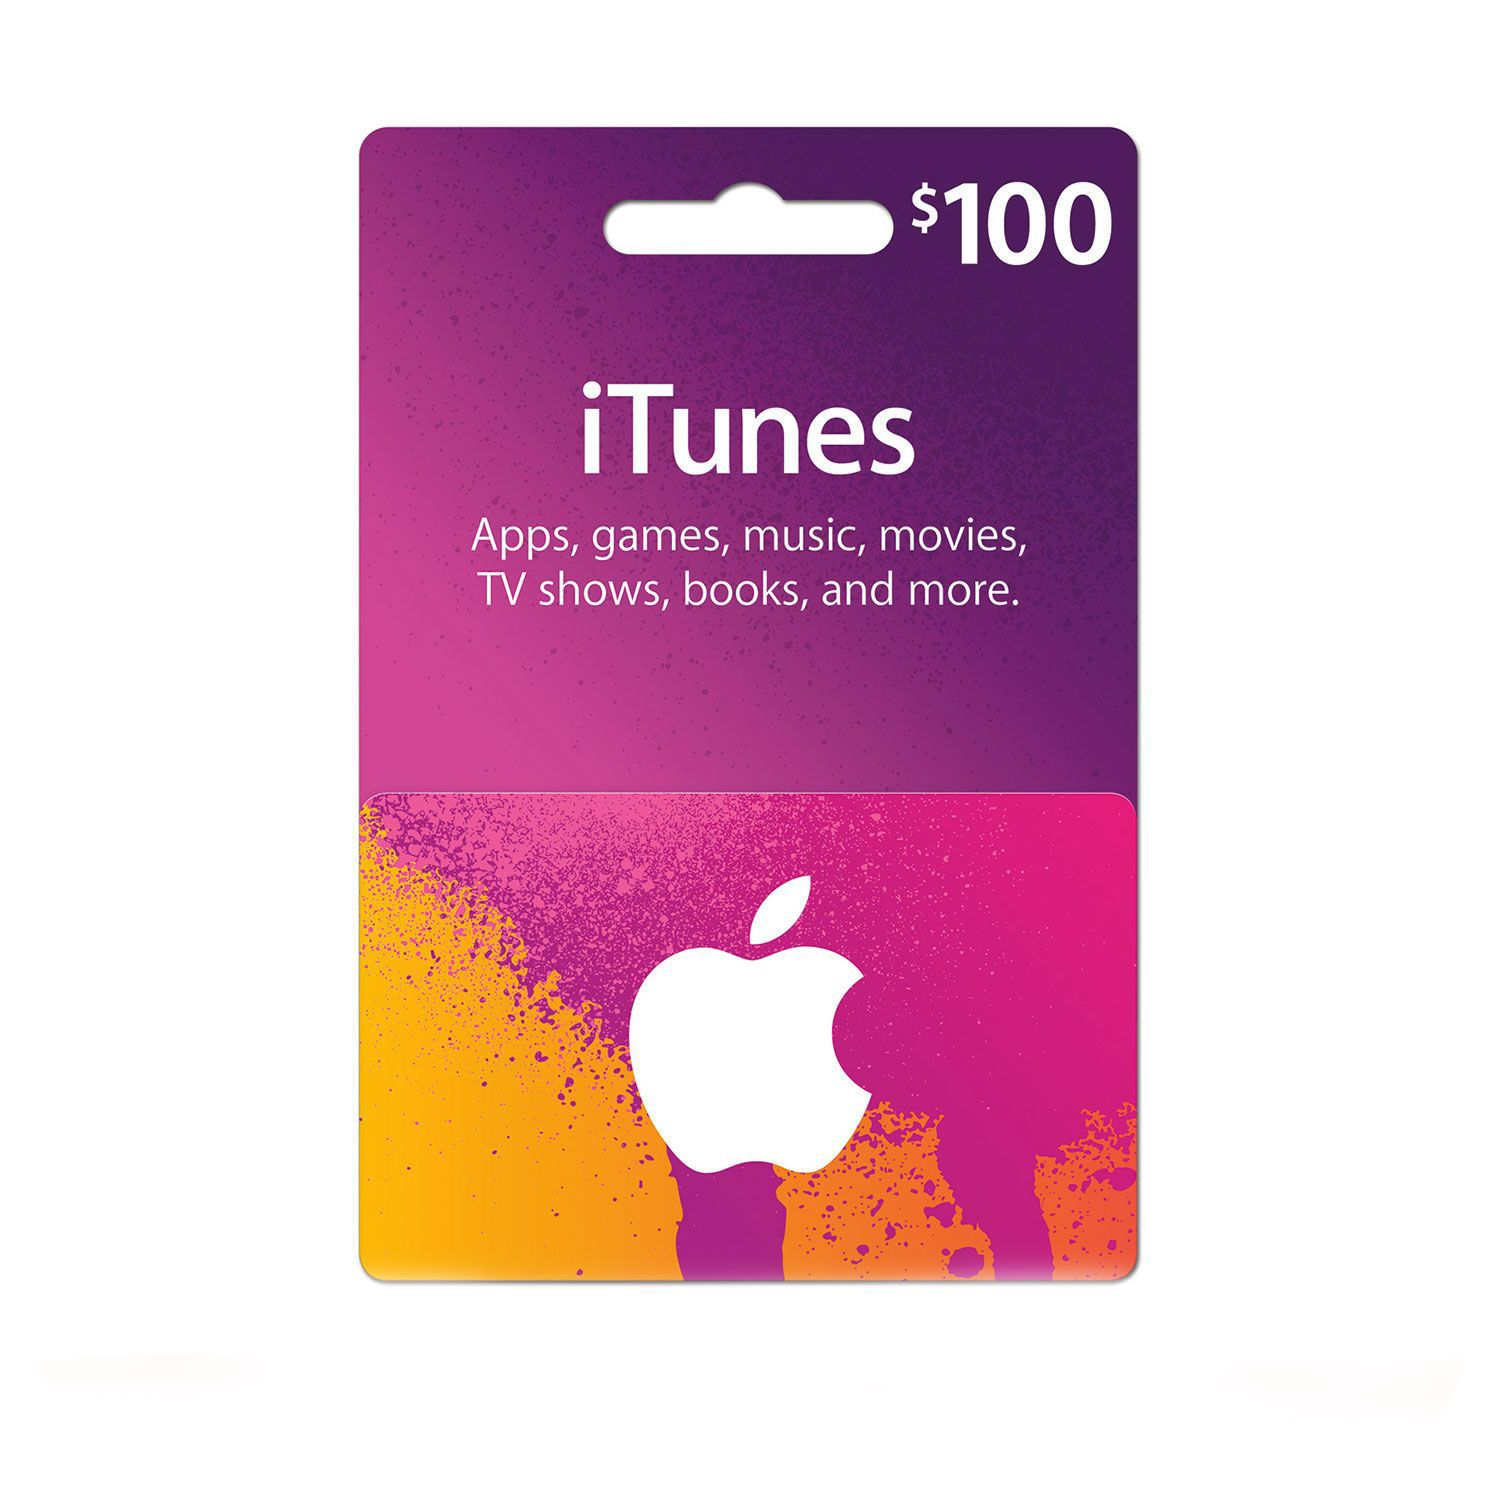 iTunes Gift Card (USA) $ 100 + BONUSES & DISCOUNTS